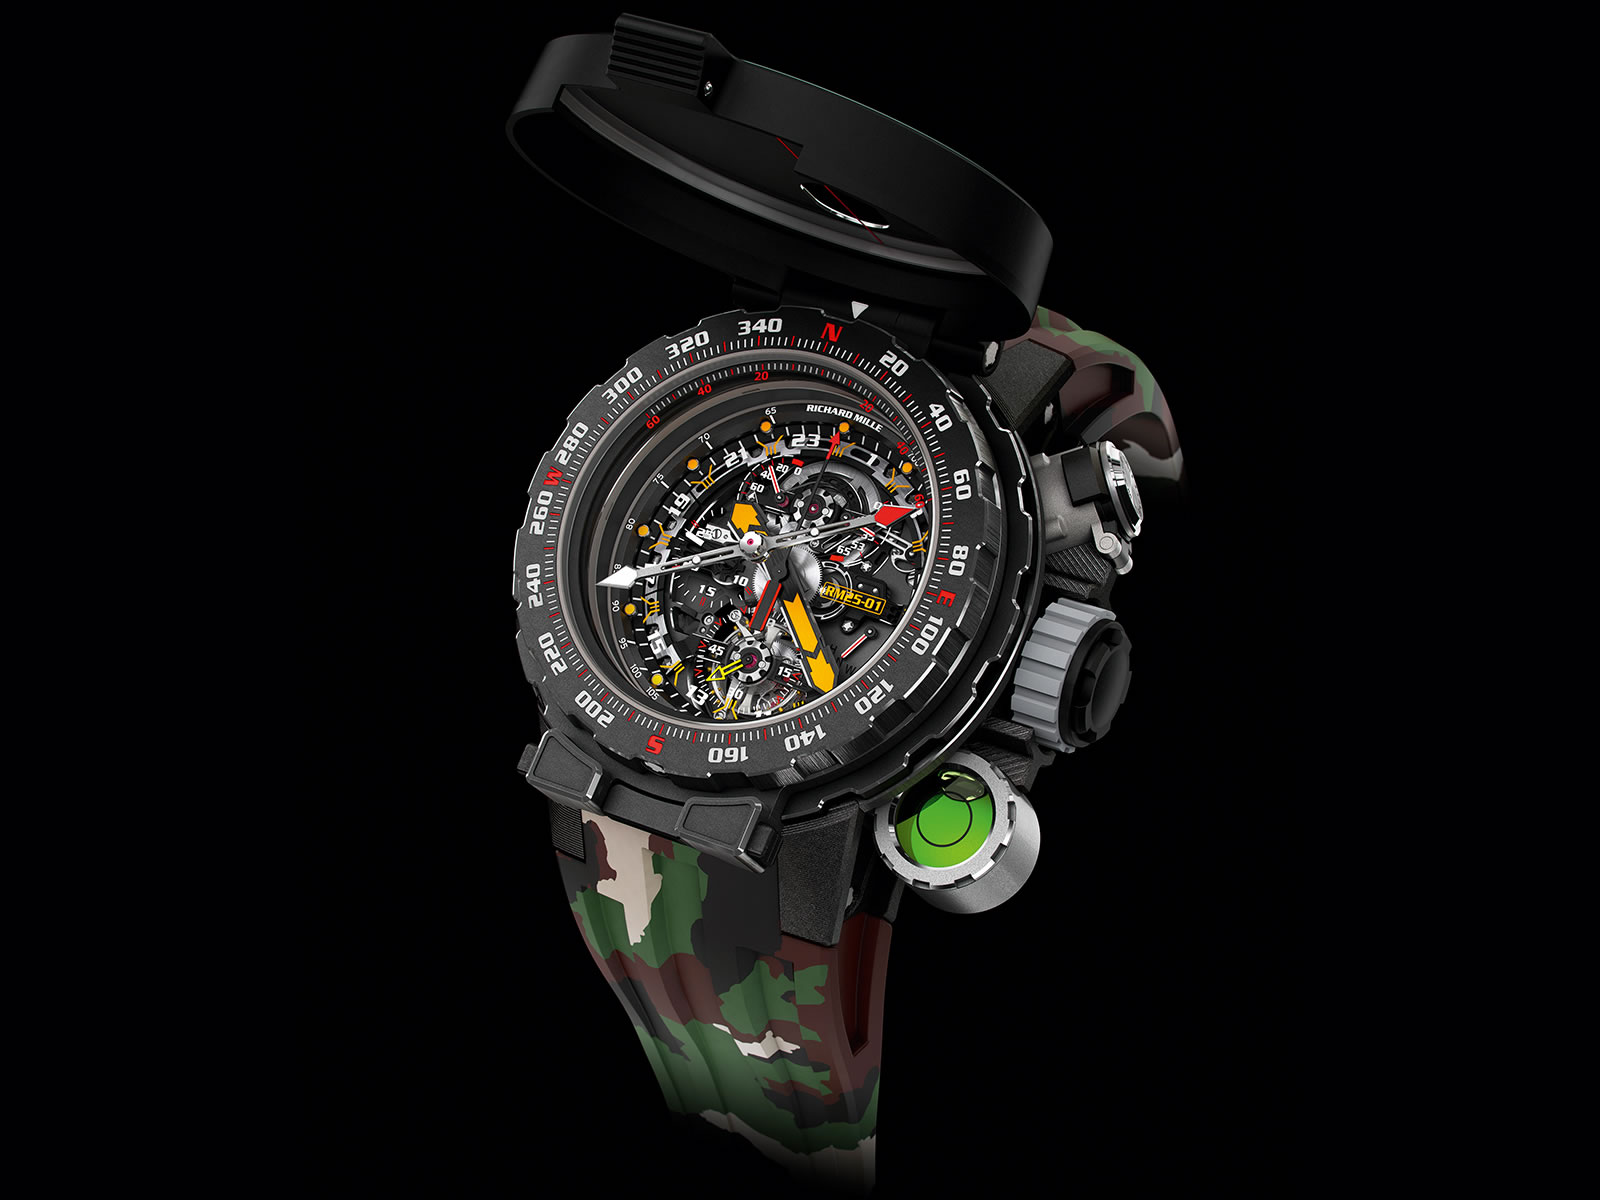 richard-mille-rm-25-01-tourbillon-adventure-sylvester-stallone-4-.jpg